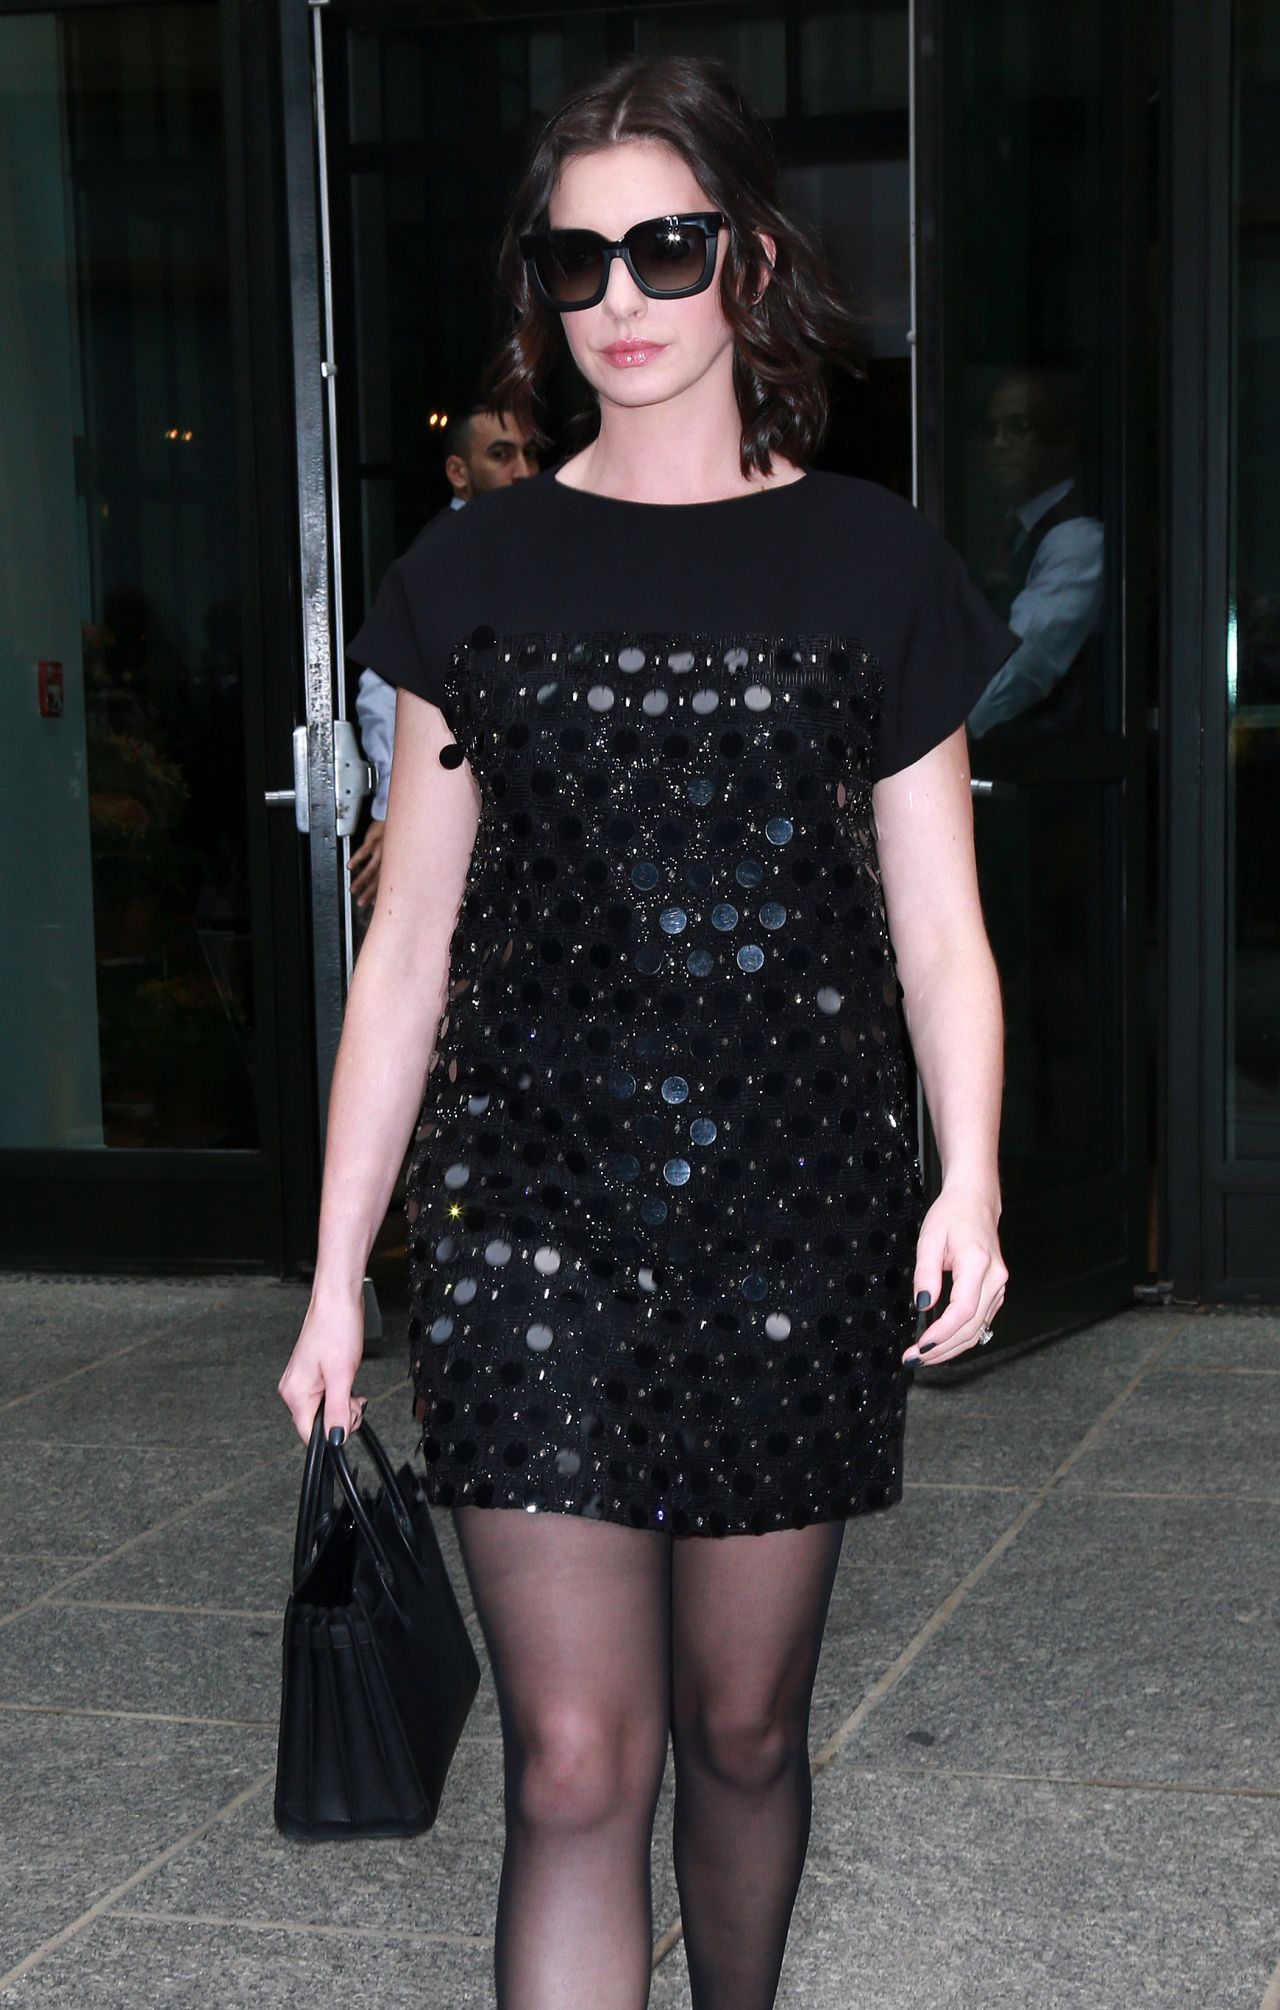 Anne Hathaway Latest Photos Celebmafia